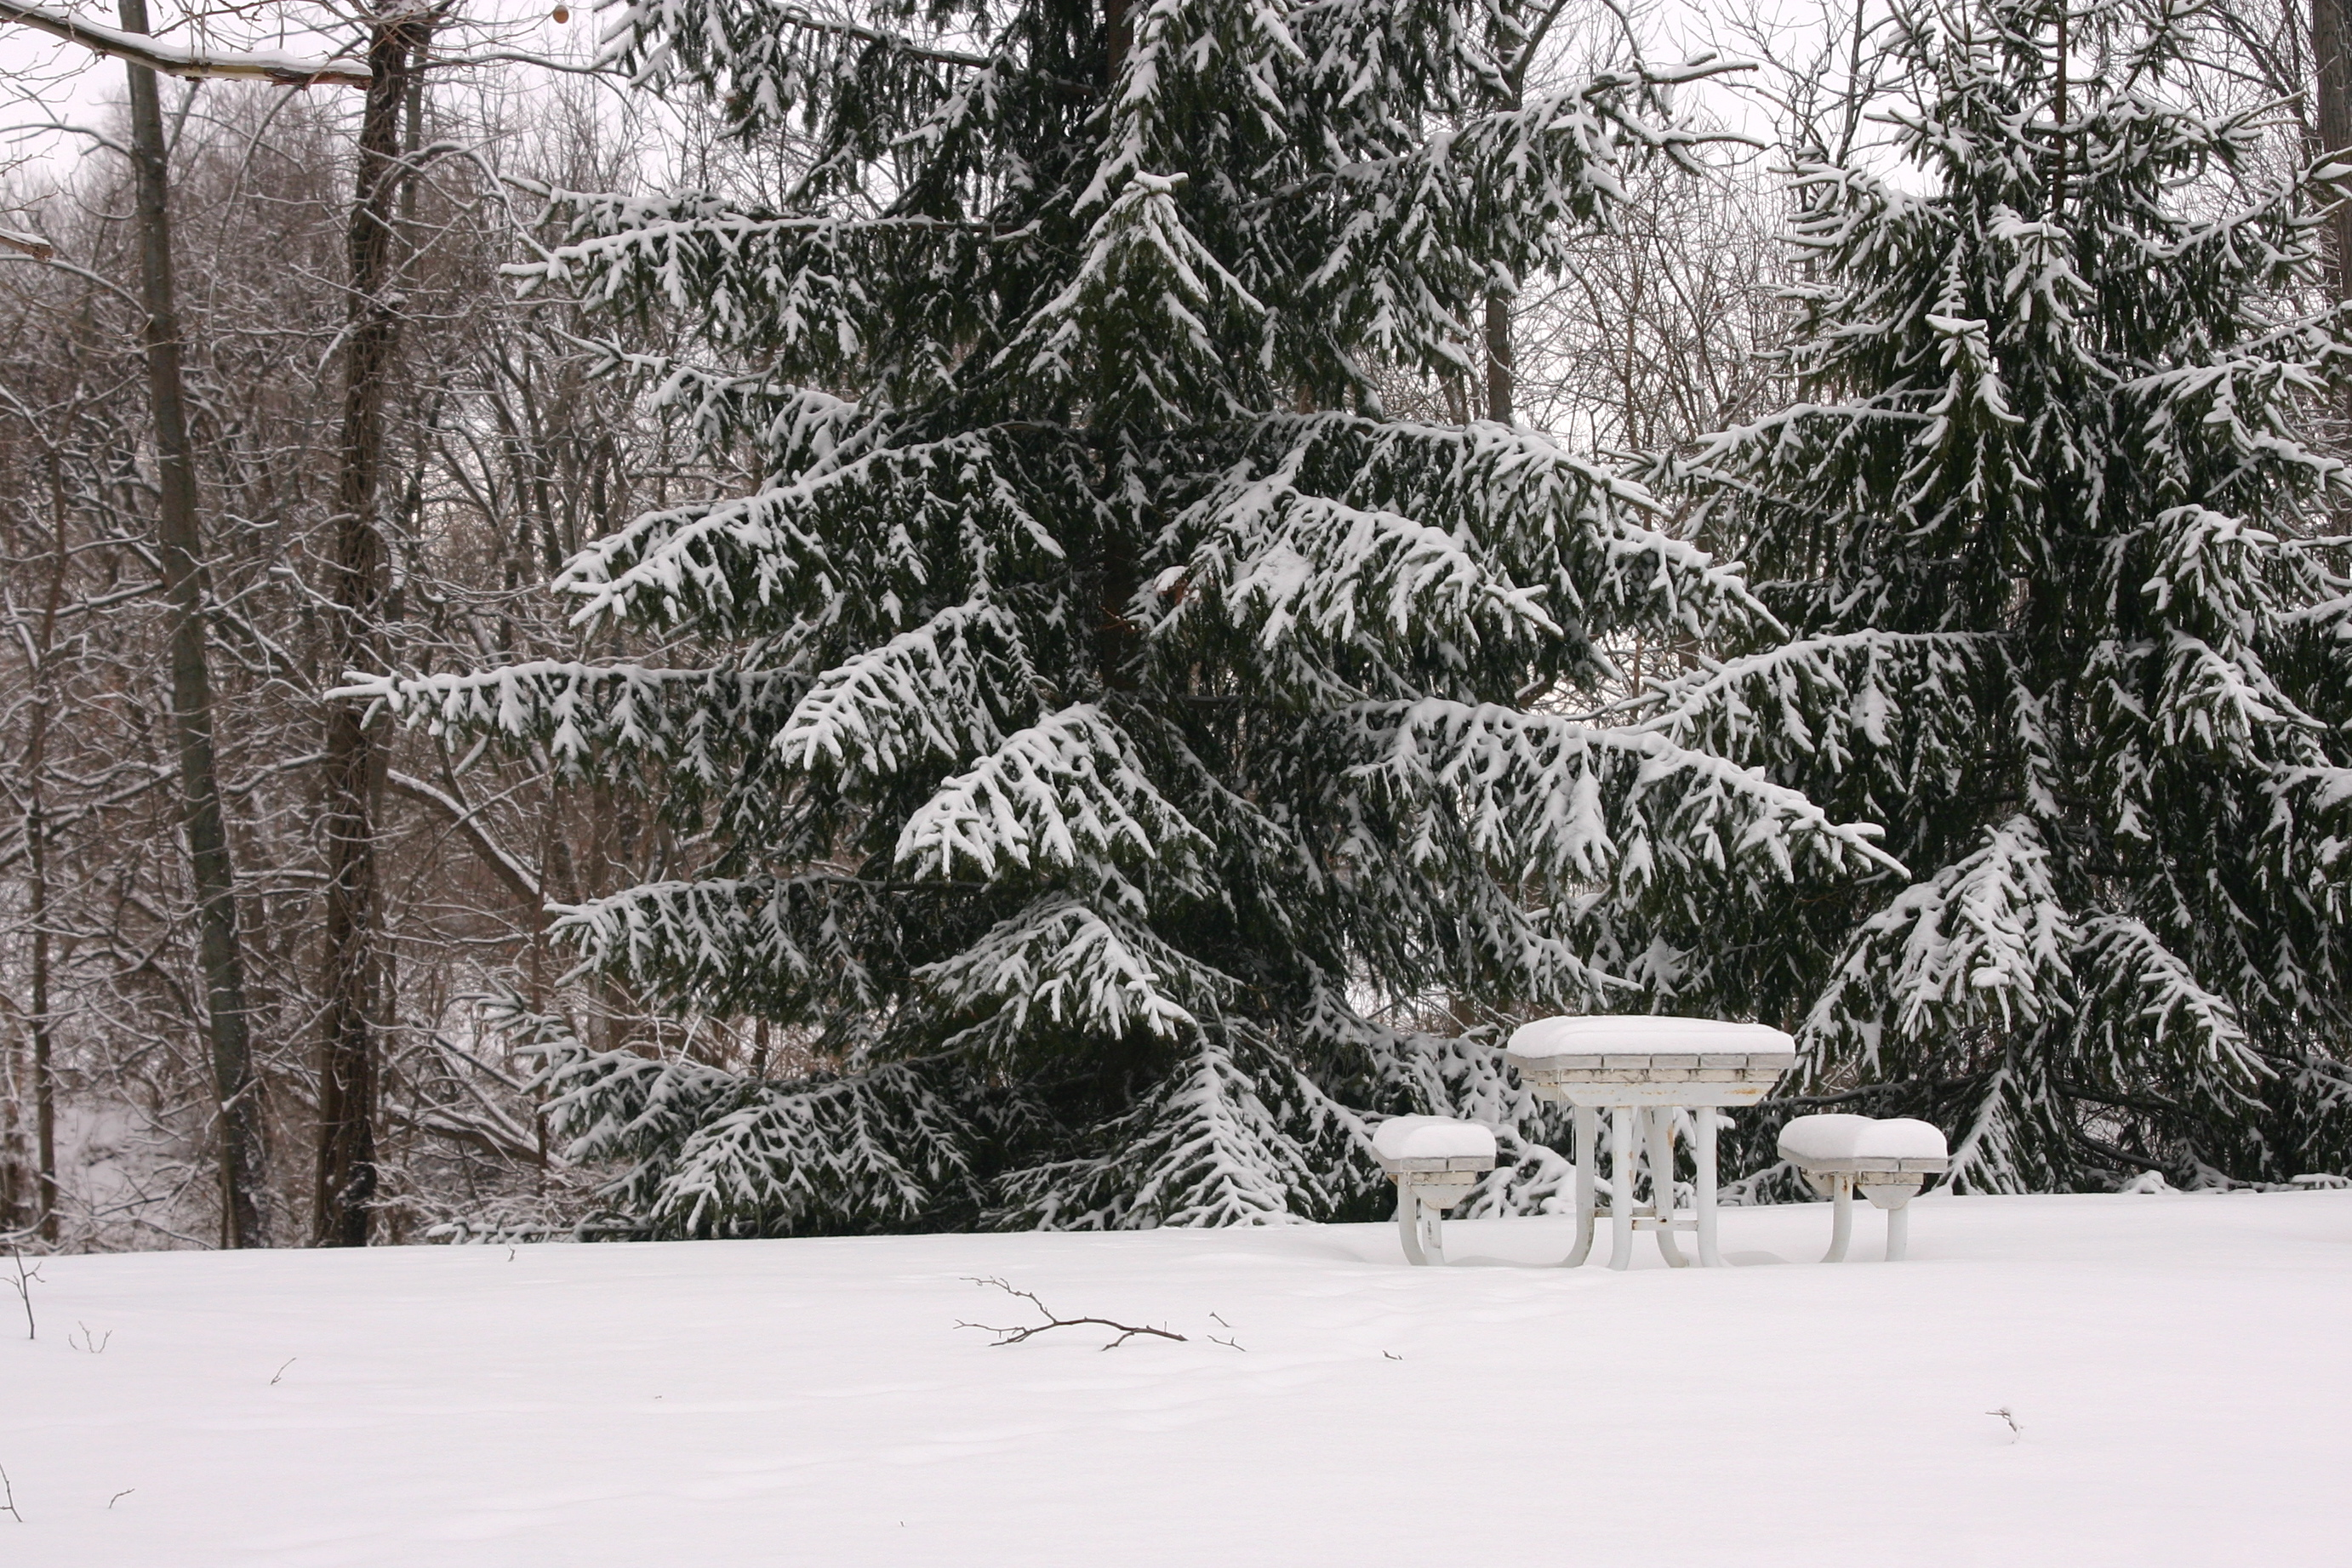 Snow blankets the tables at Friendship Gardens.